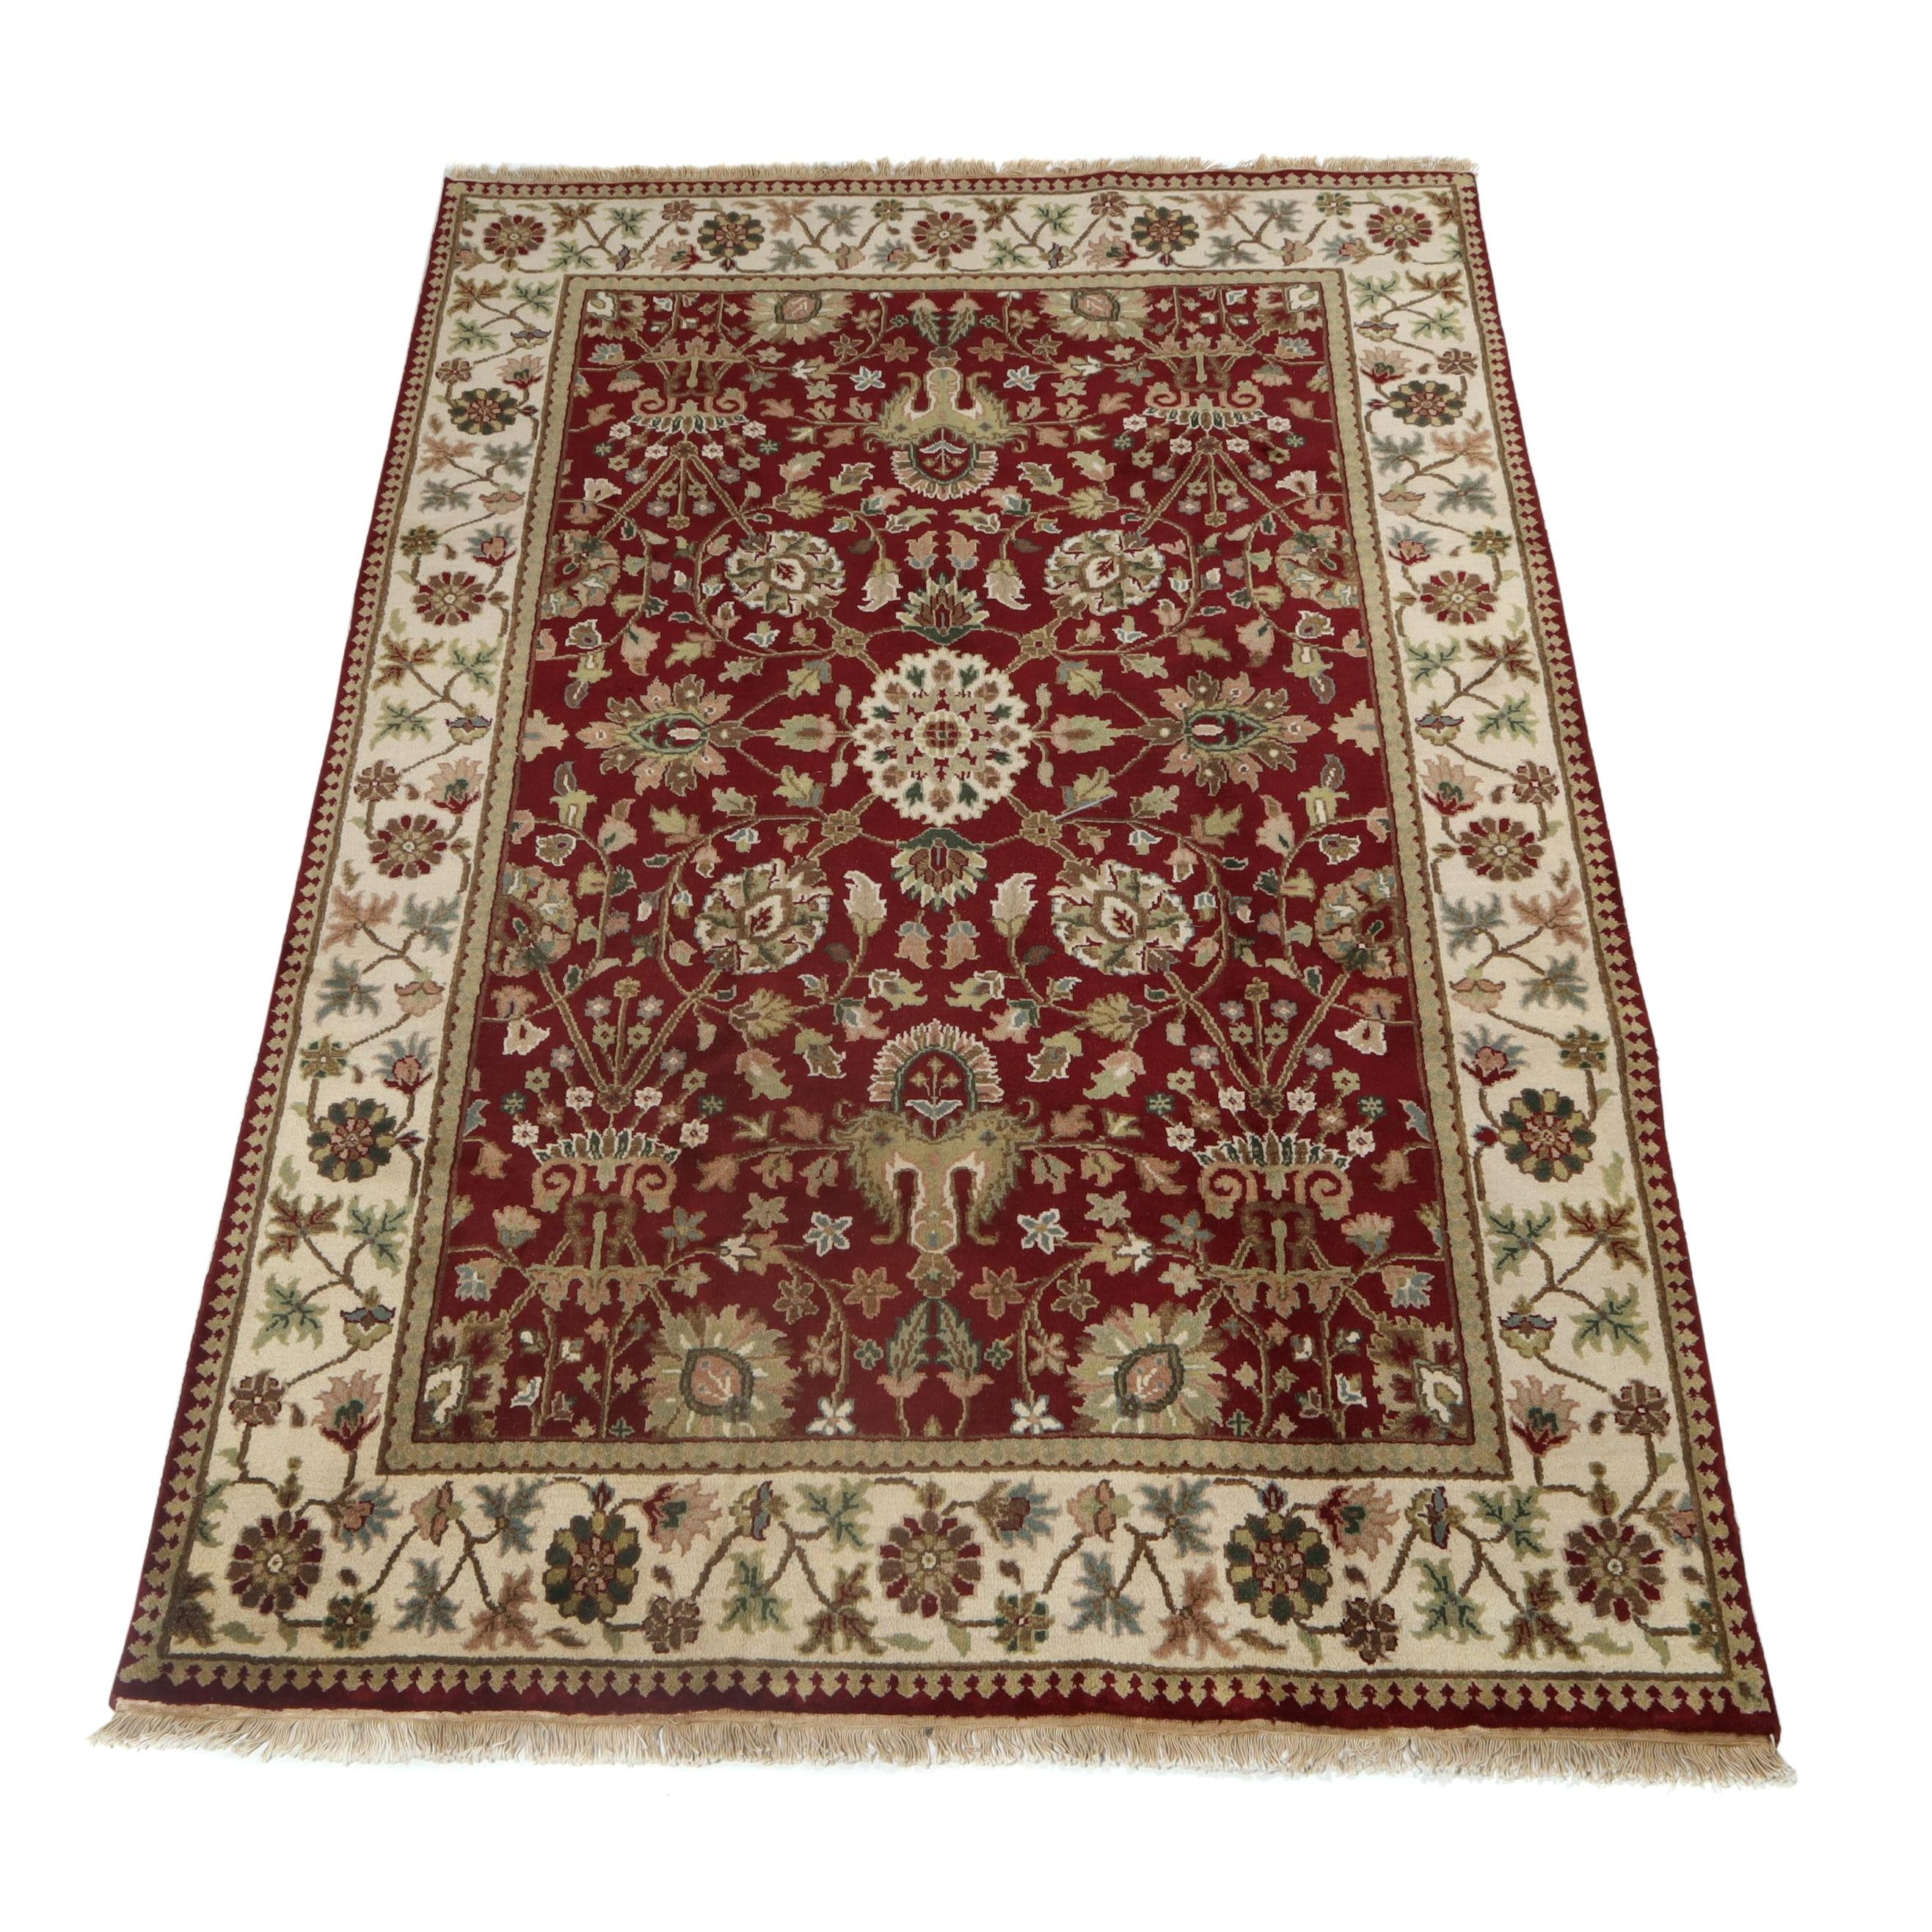 6.1' x 9.4' Hand-Knotted Indo-Persian Tabriz Wool Rug